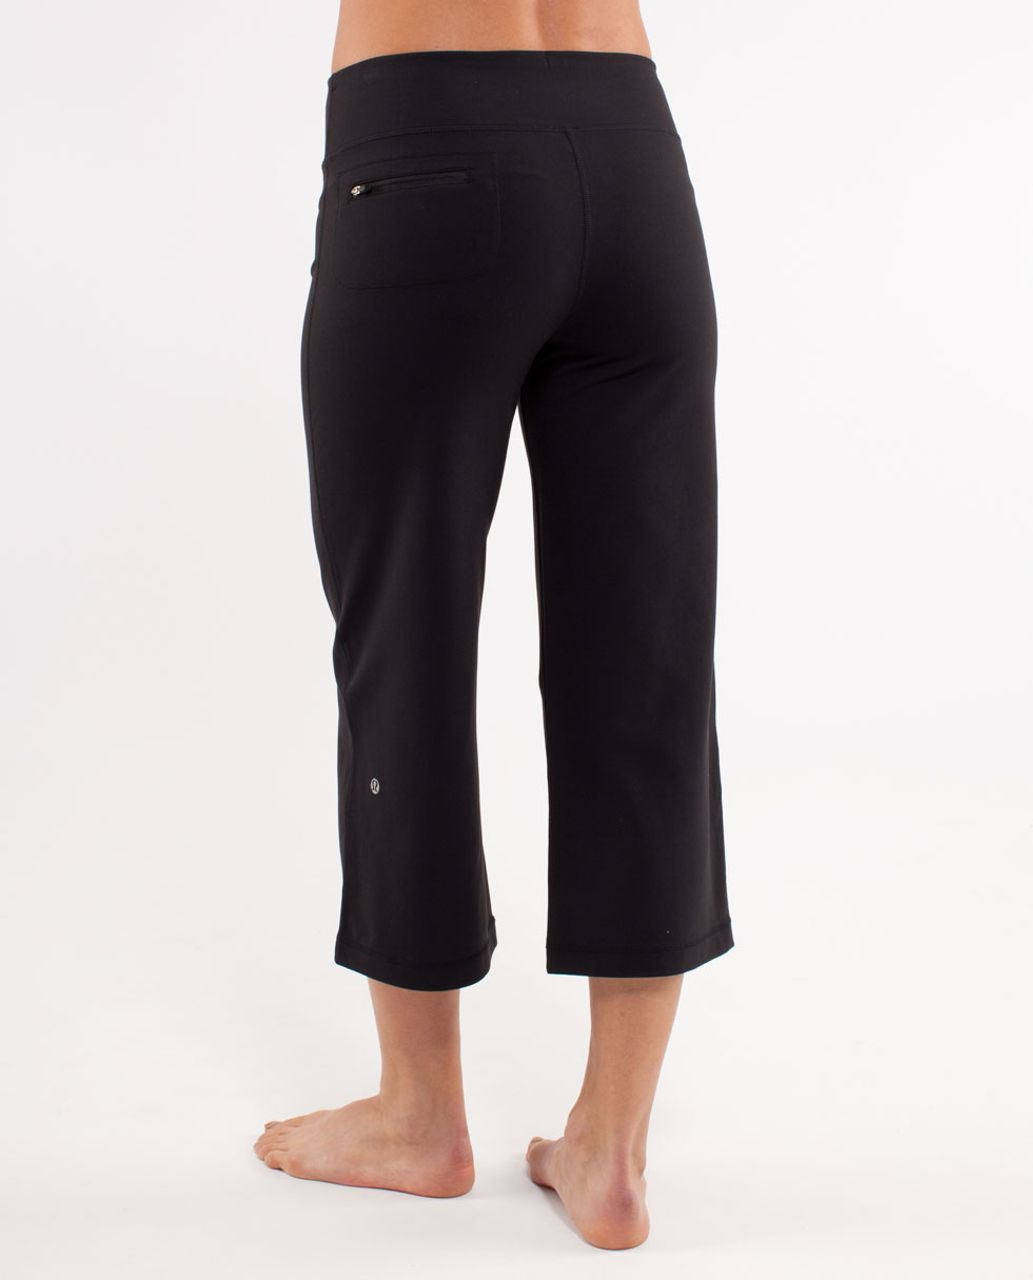 Lululemon Relaxed Fit Crop II - Black